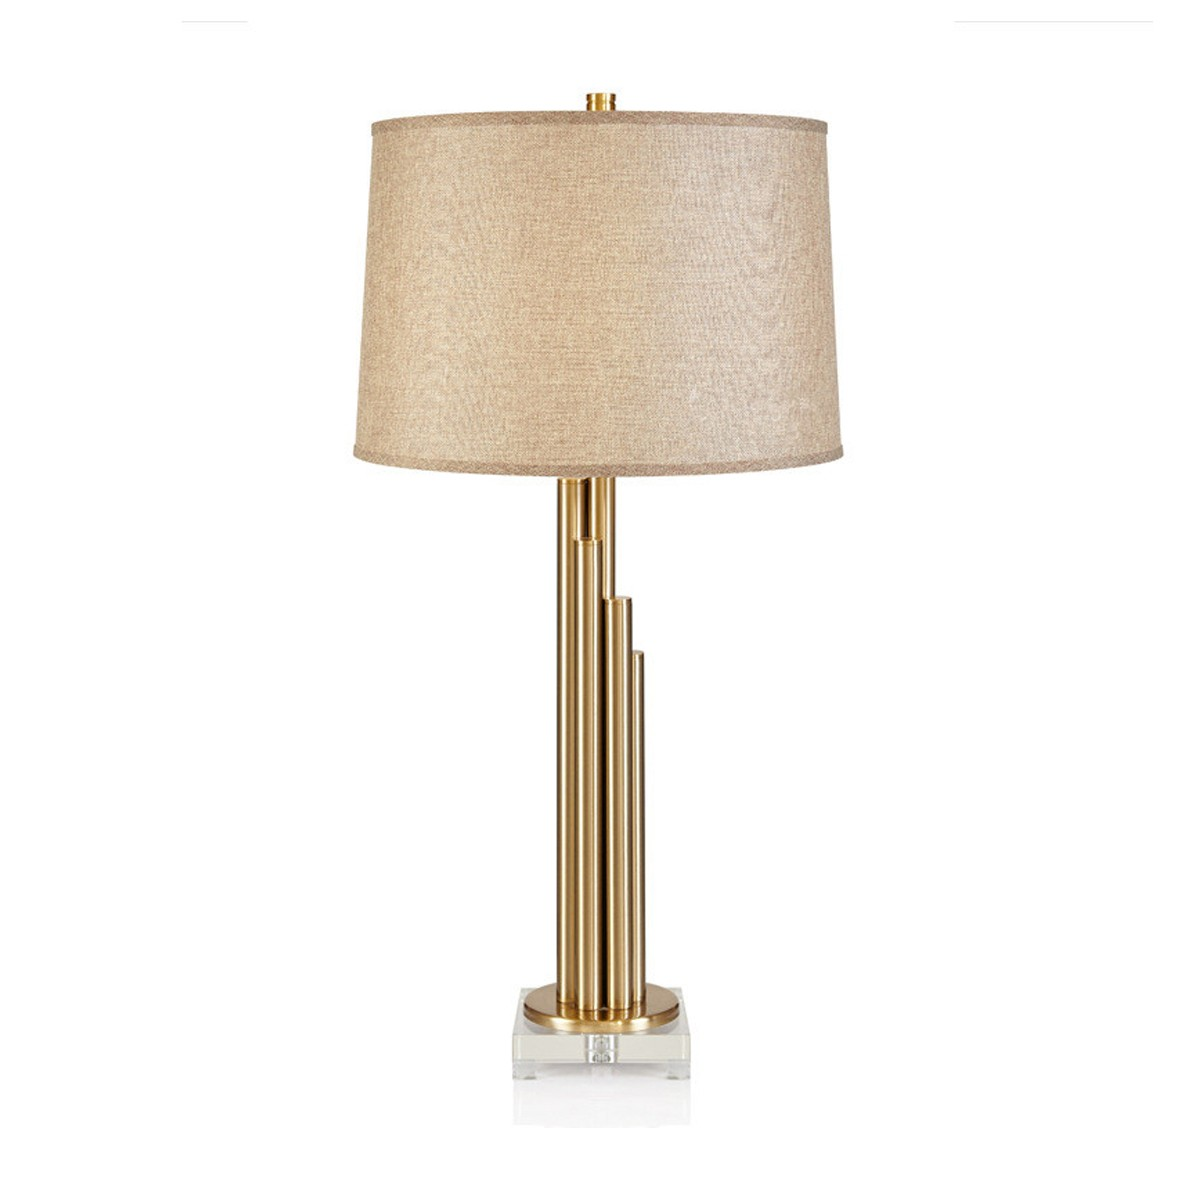 Symphony - Natural Brass Finish Table Lamp with Shade